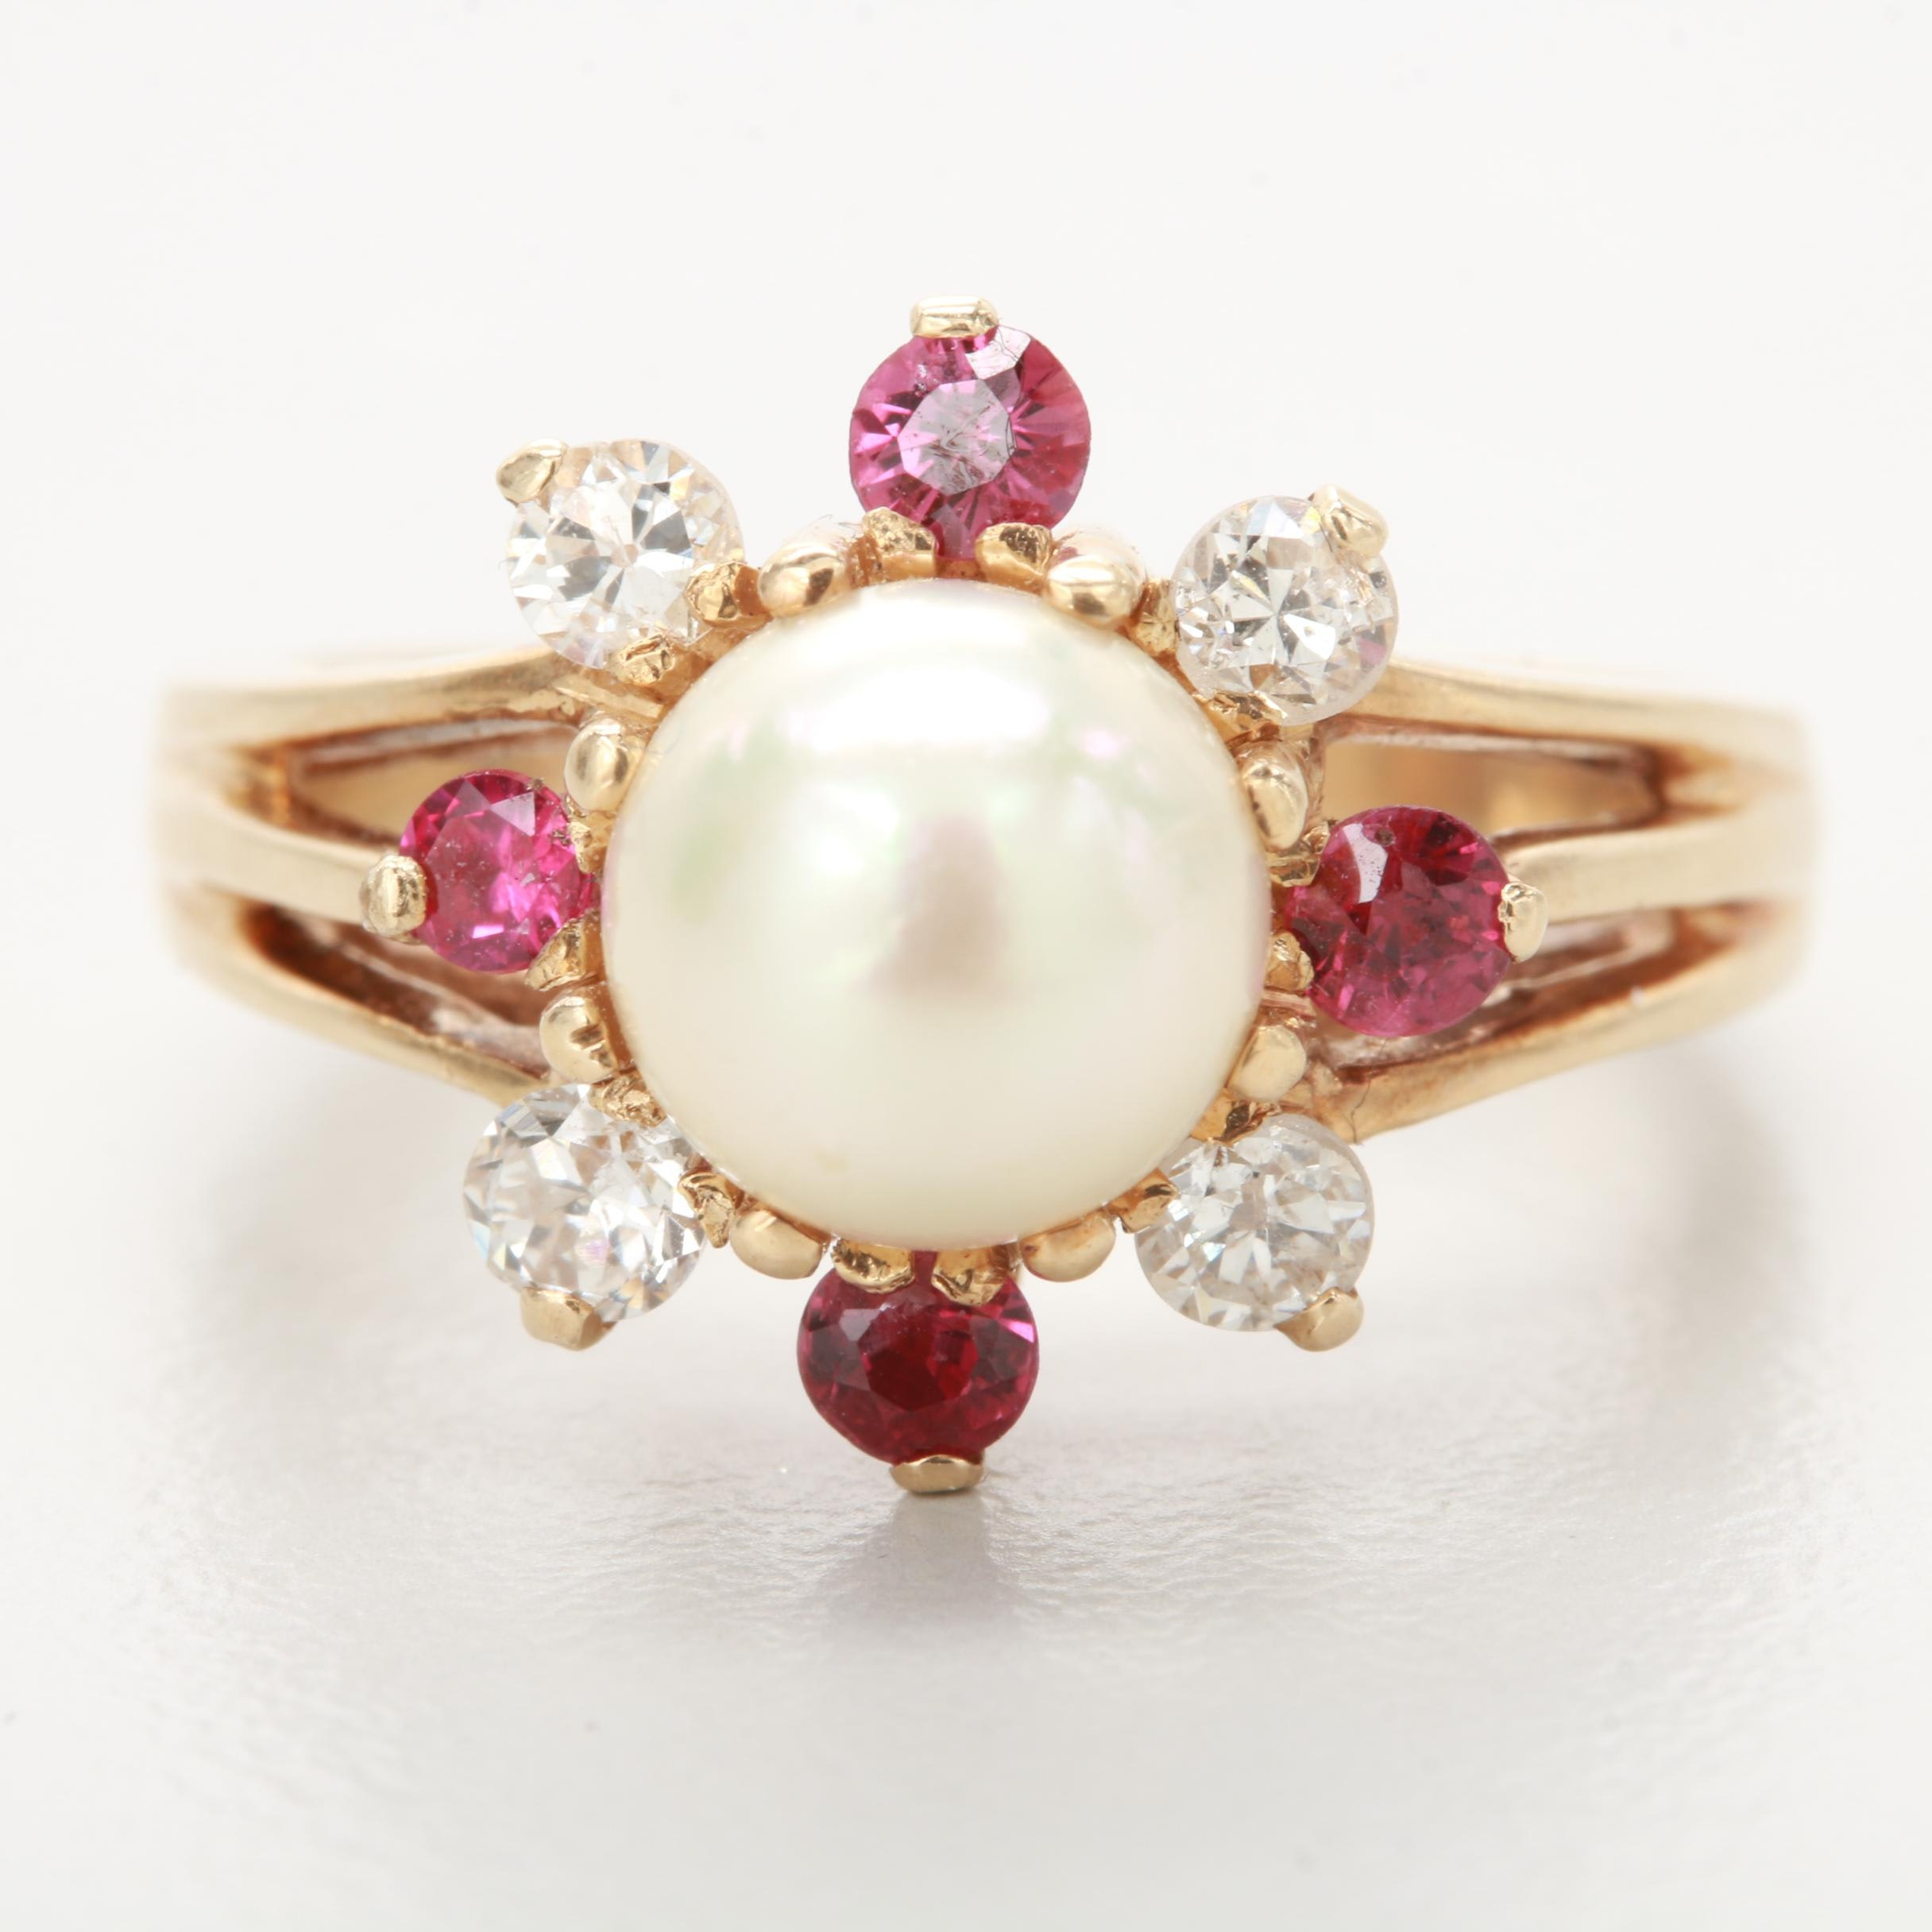 14K Yellow Gold Cultured Pearl, Ruby and Diamond Ring